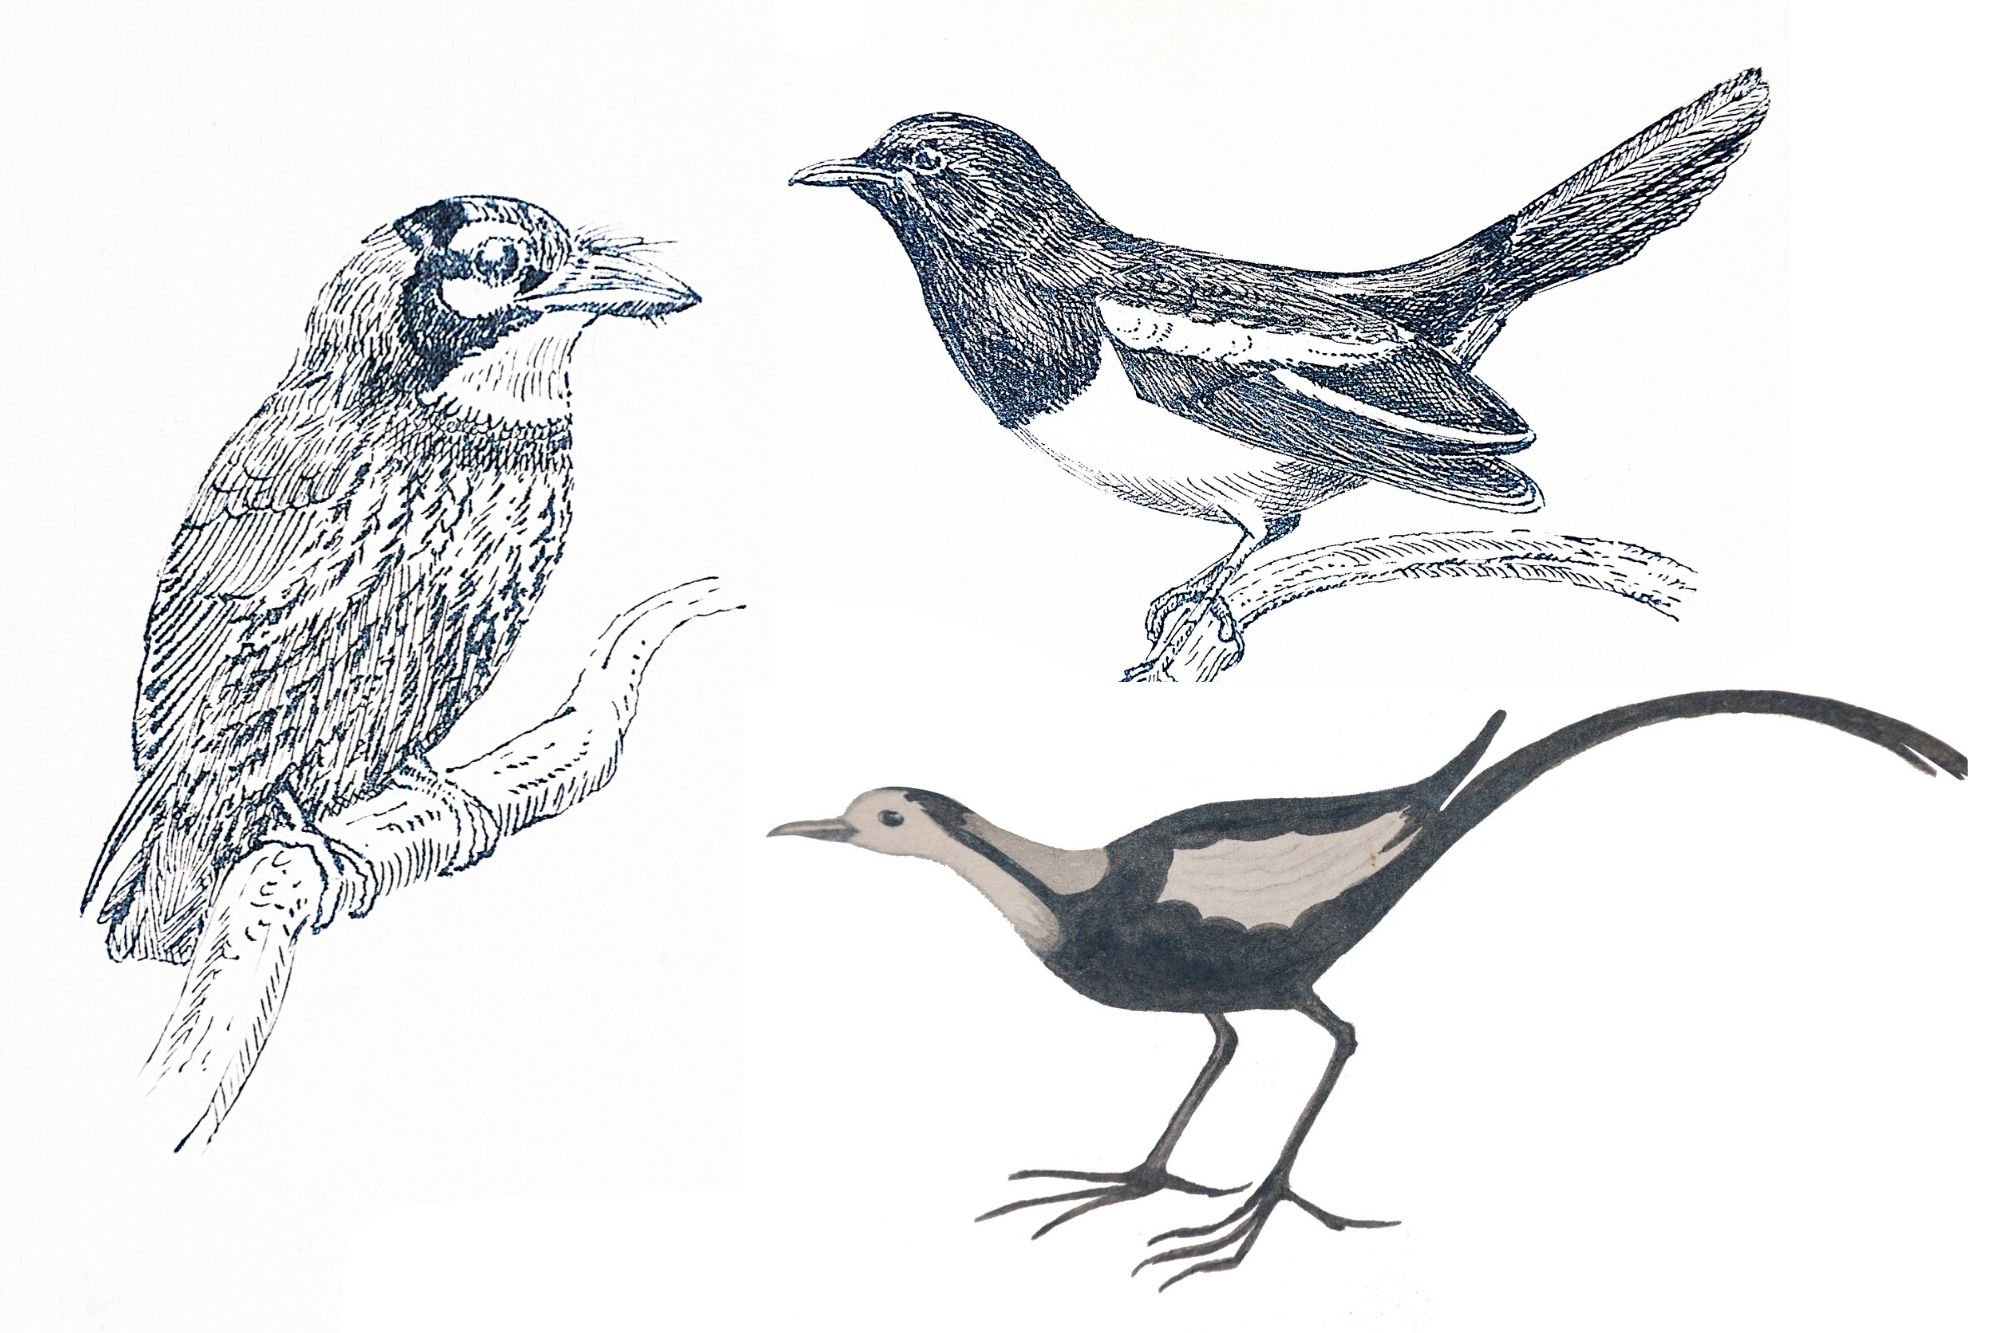 10 instalments and black-and-white illustrations commissioned by Sen Gupta, but not used earlier, have been put together by Gautam Sengupta, son of this naturalist, in a book titled Birds Around Santiniketan recently published by Bolpur-based Birutjatio Sahitya Sammilani.